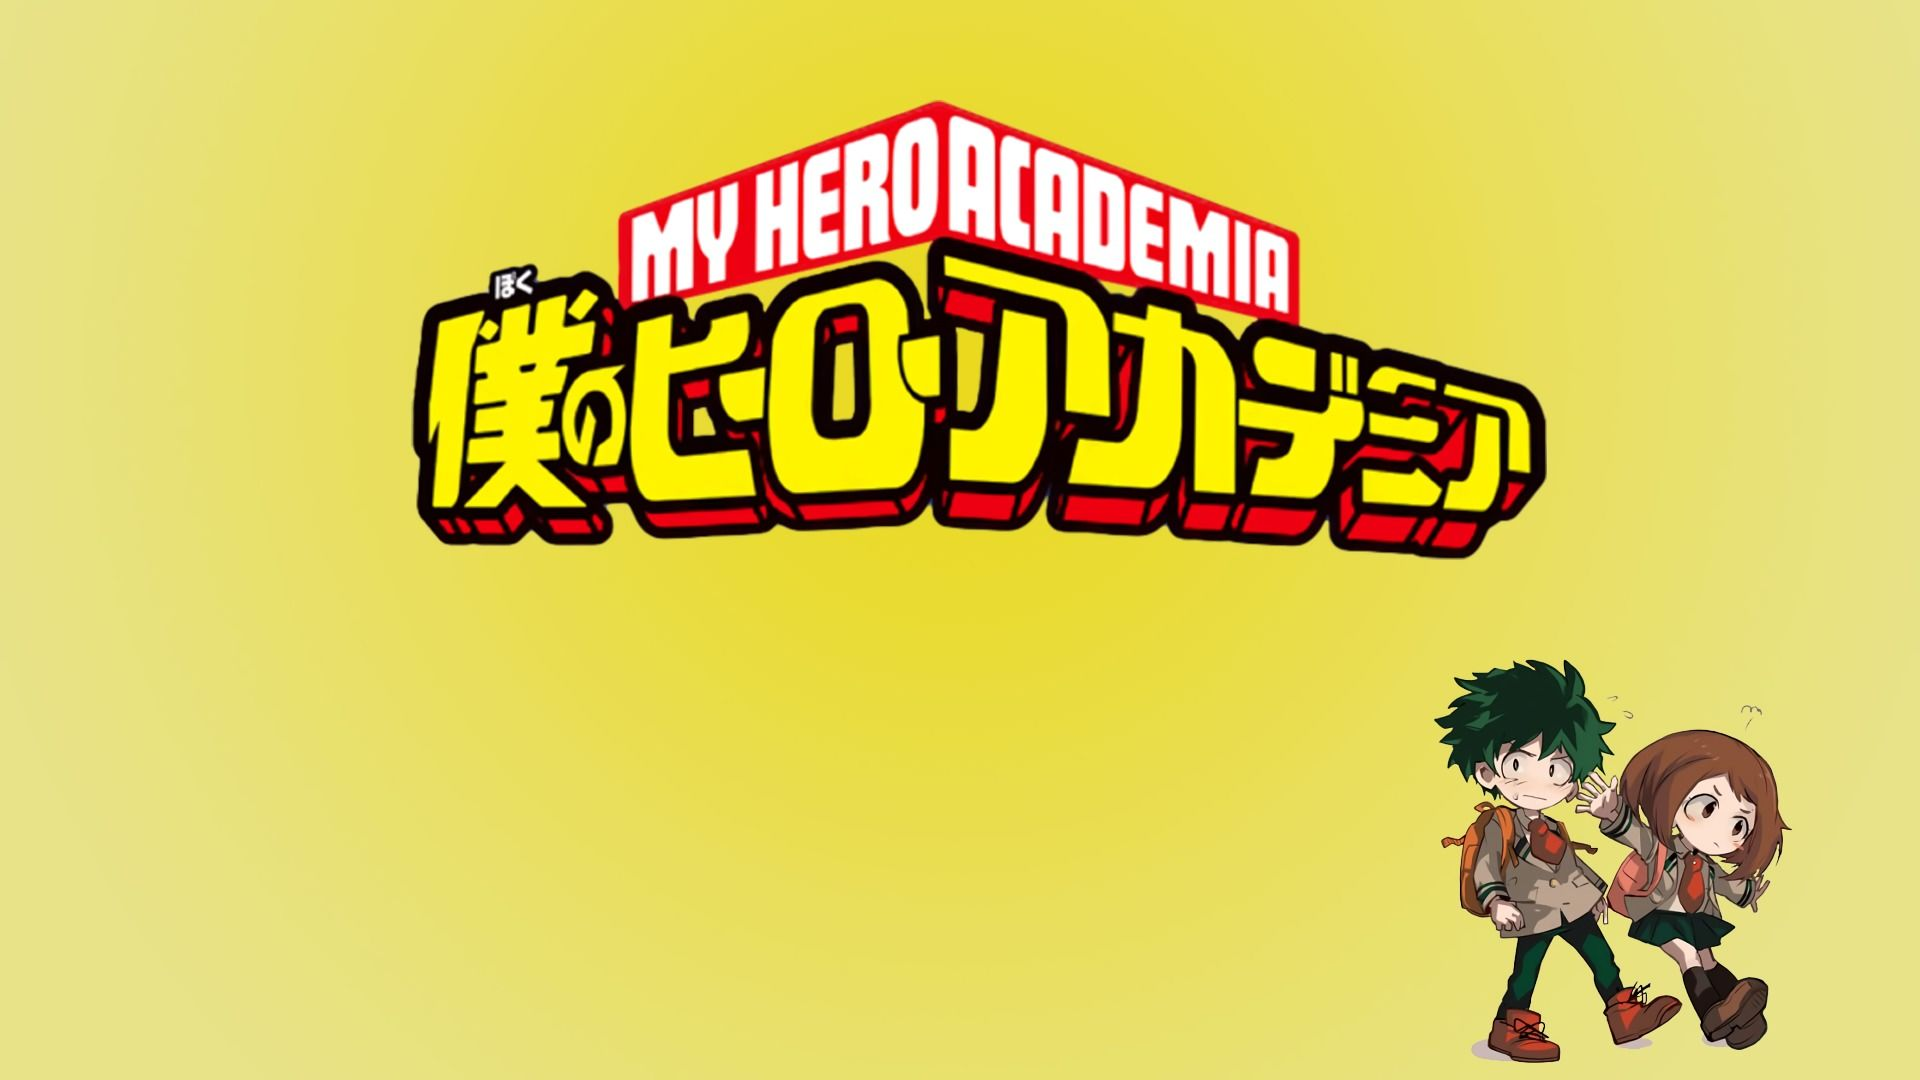 A quick wallpaper I put to her [My Hero Academia] Need